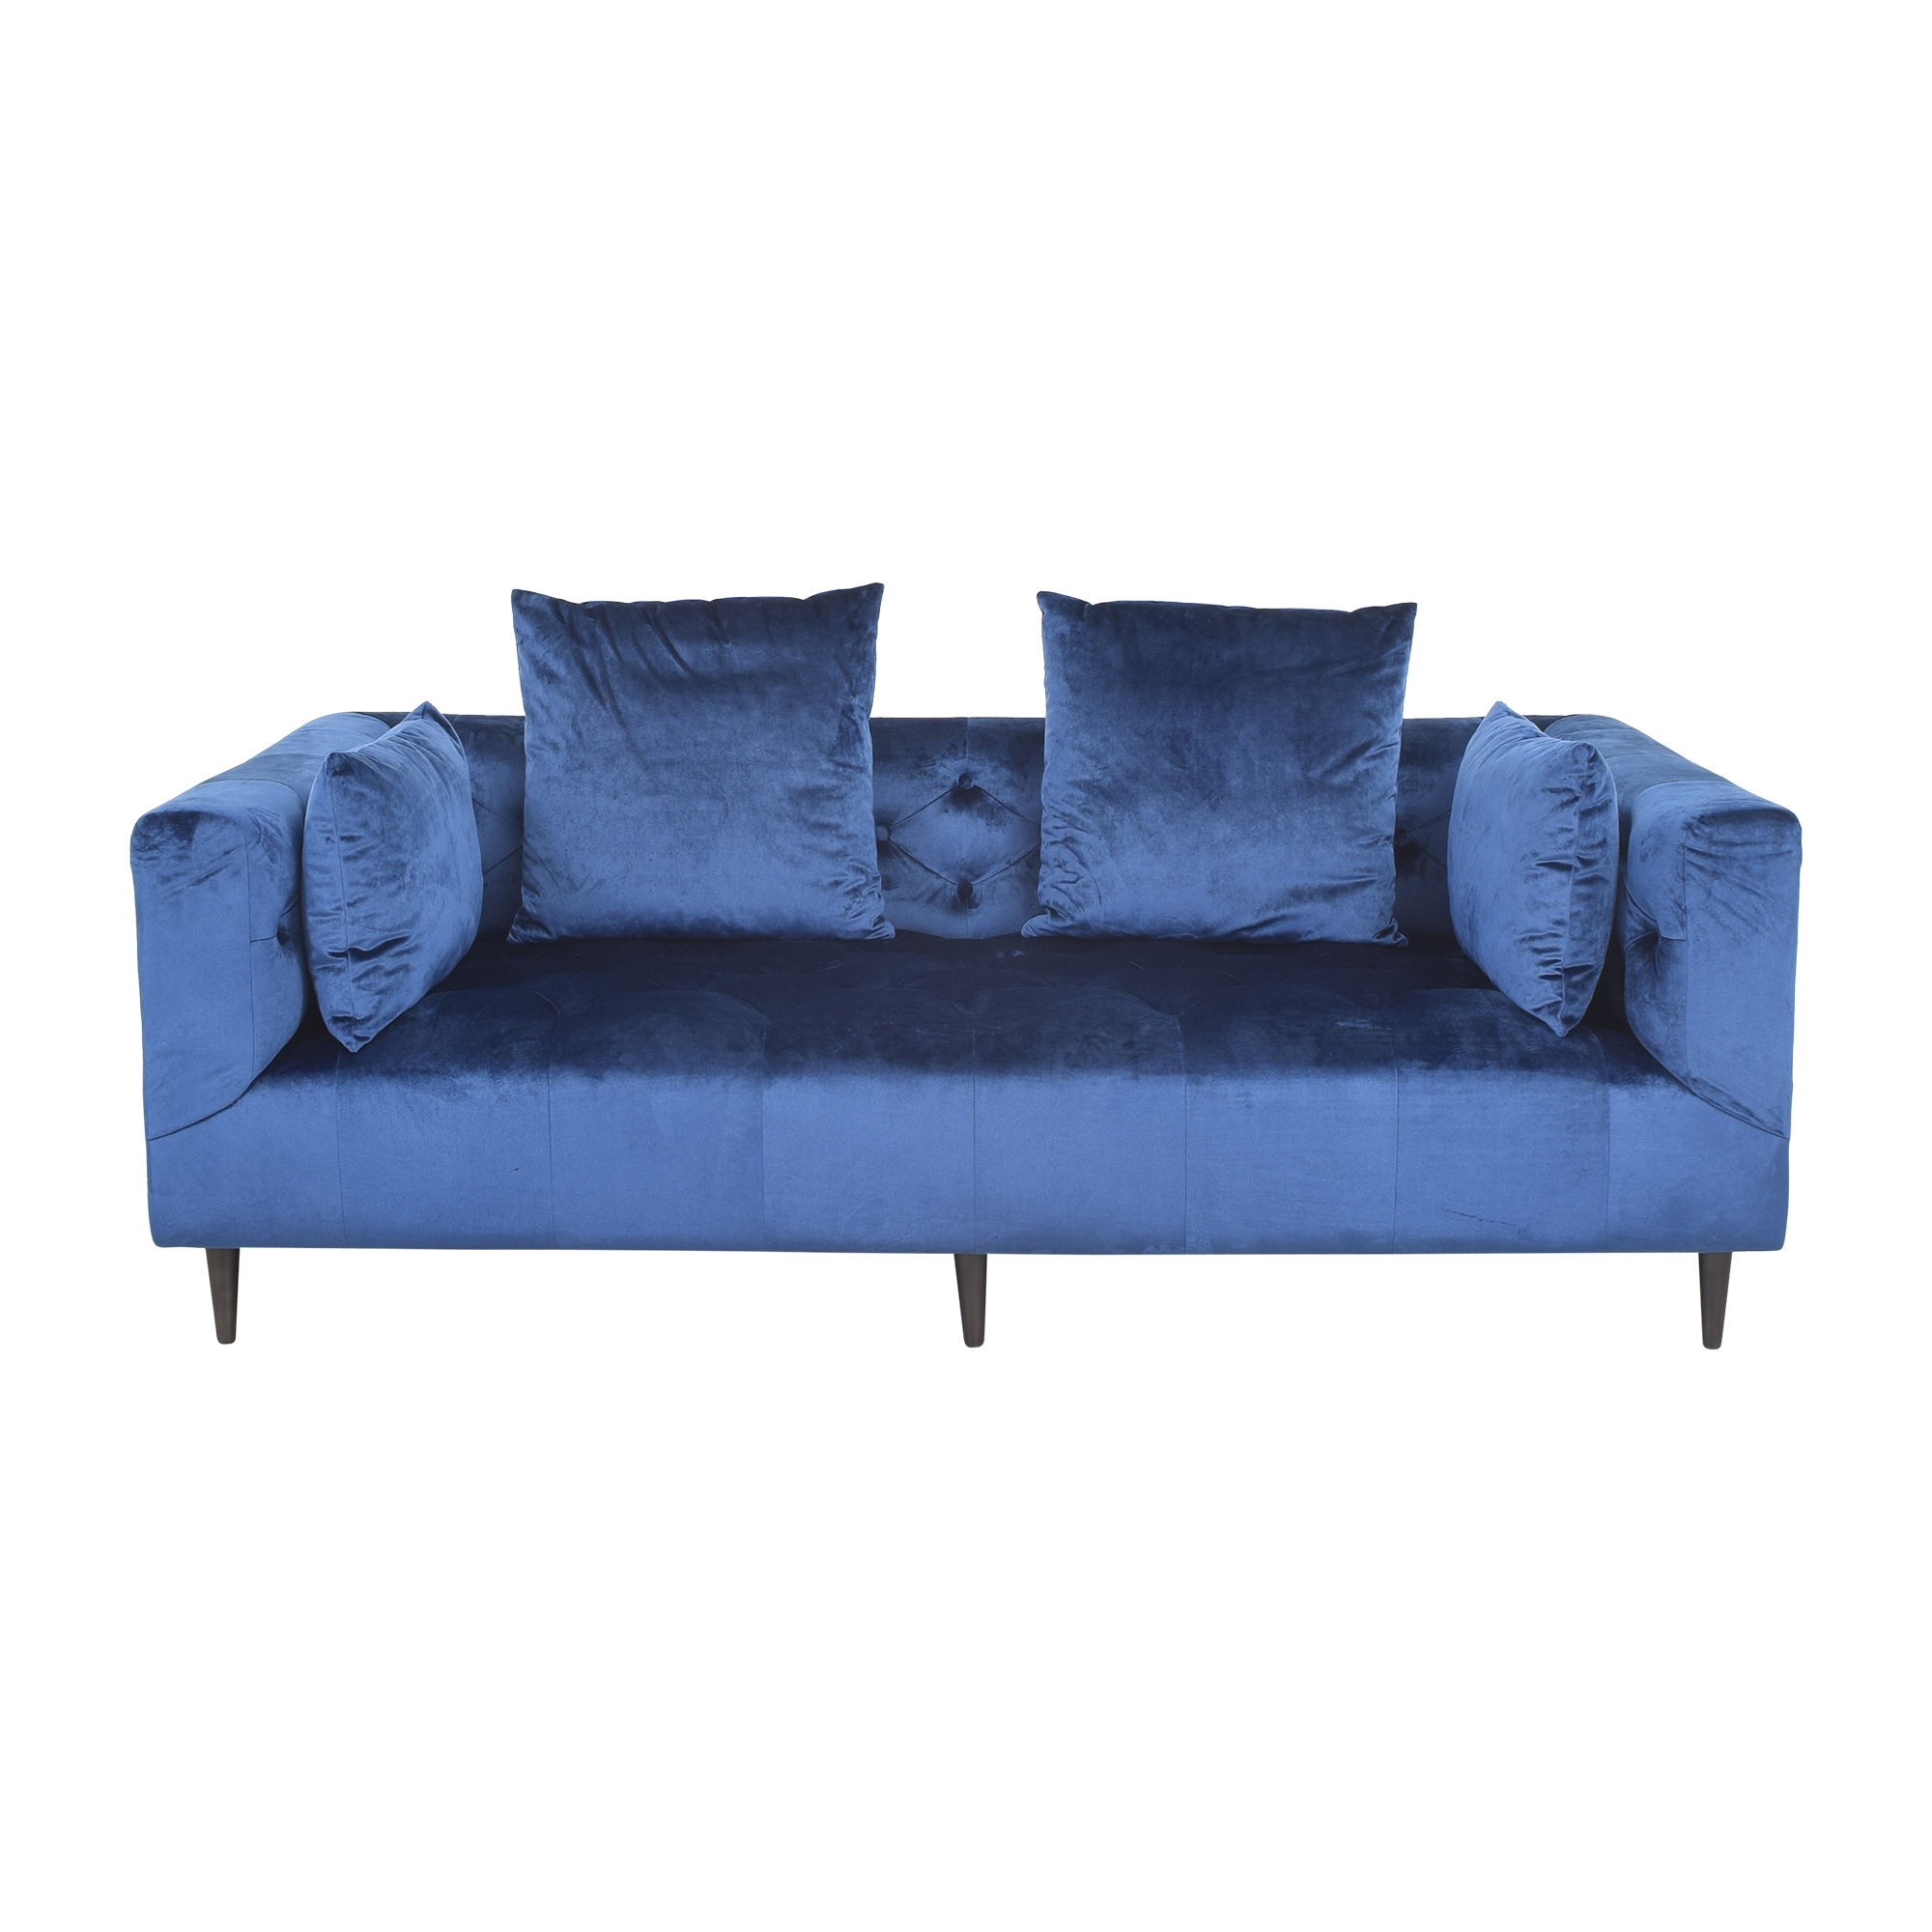 shop Interior Define Ms Chesterfield Interior Define Classic Sofas